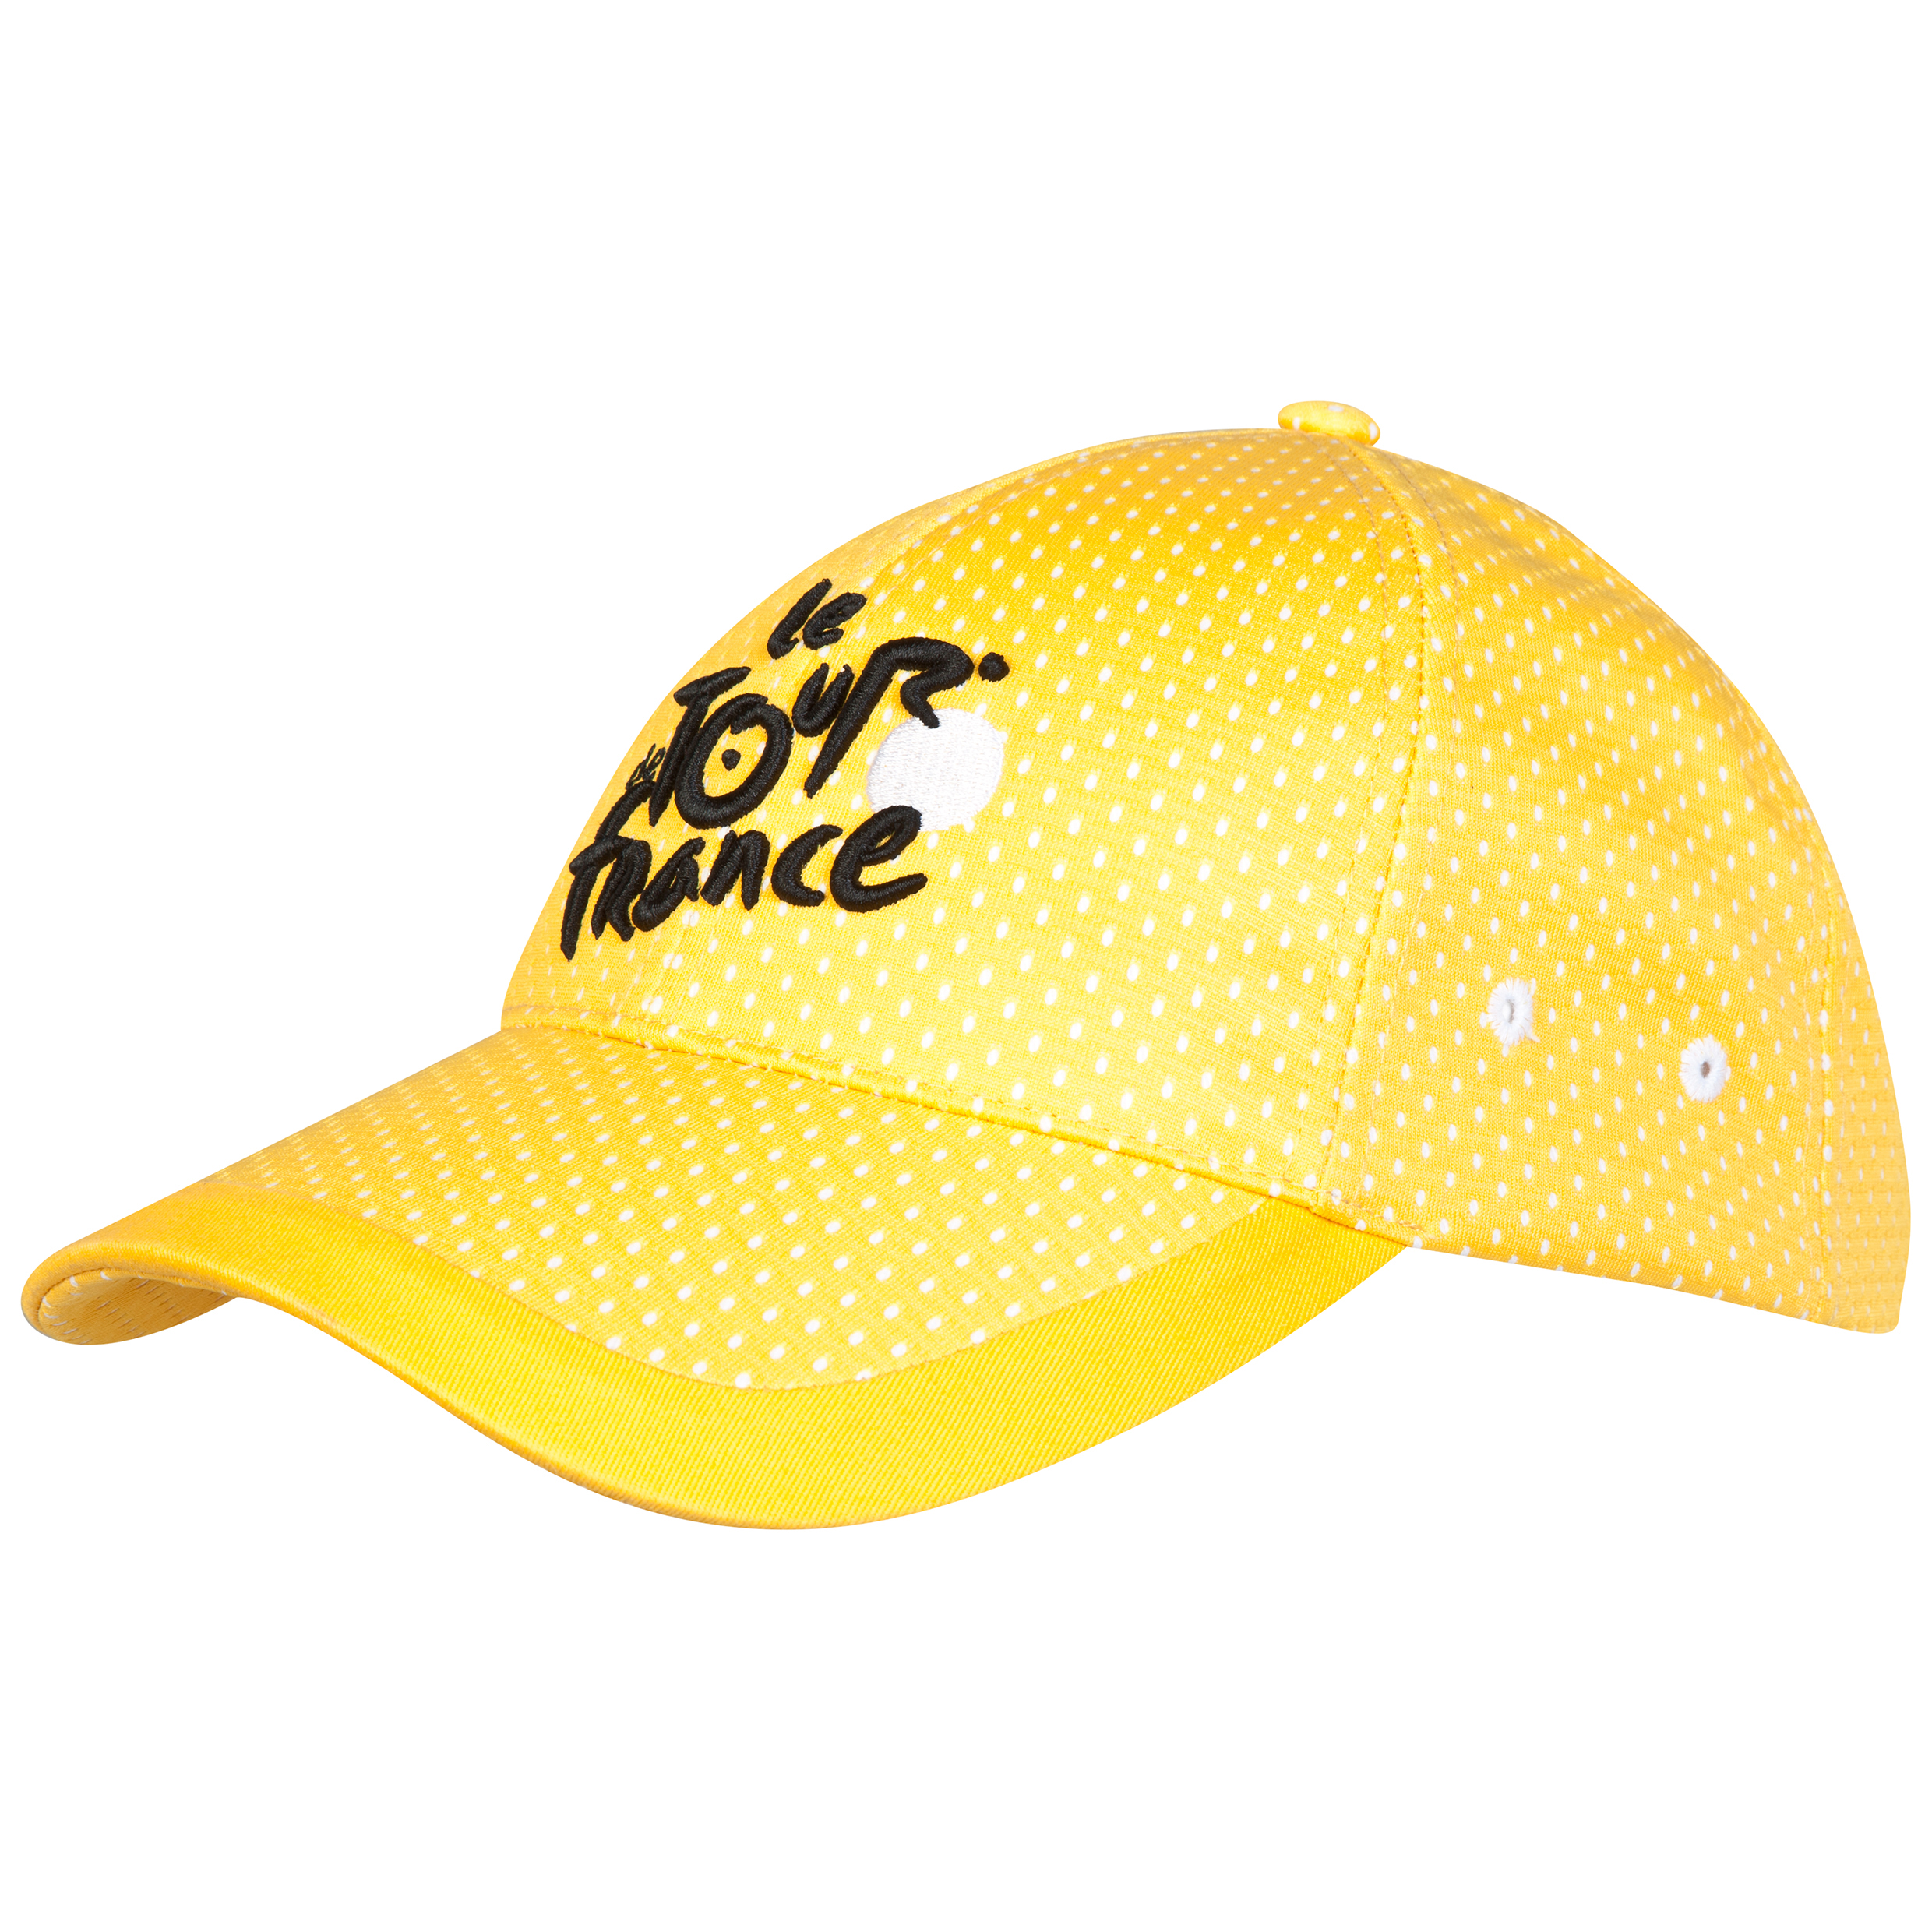 Le Tour de France Fan Sports Cap - Yellow